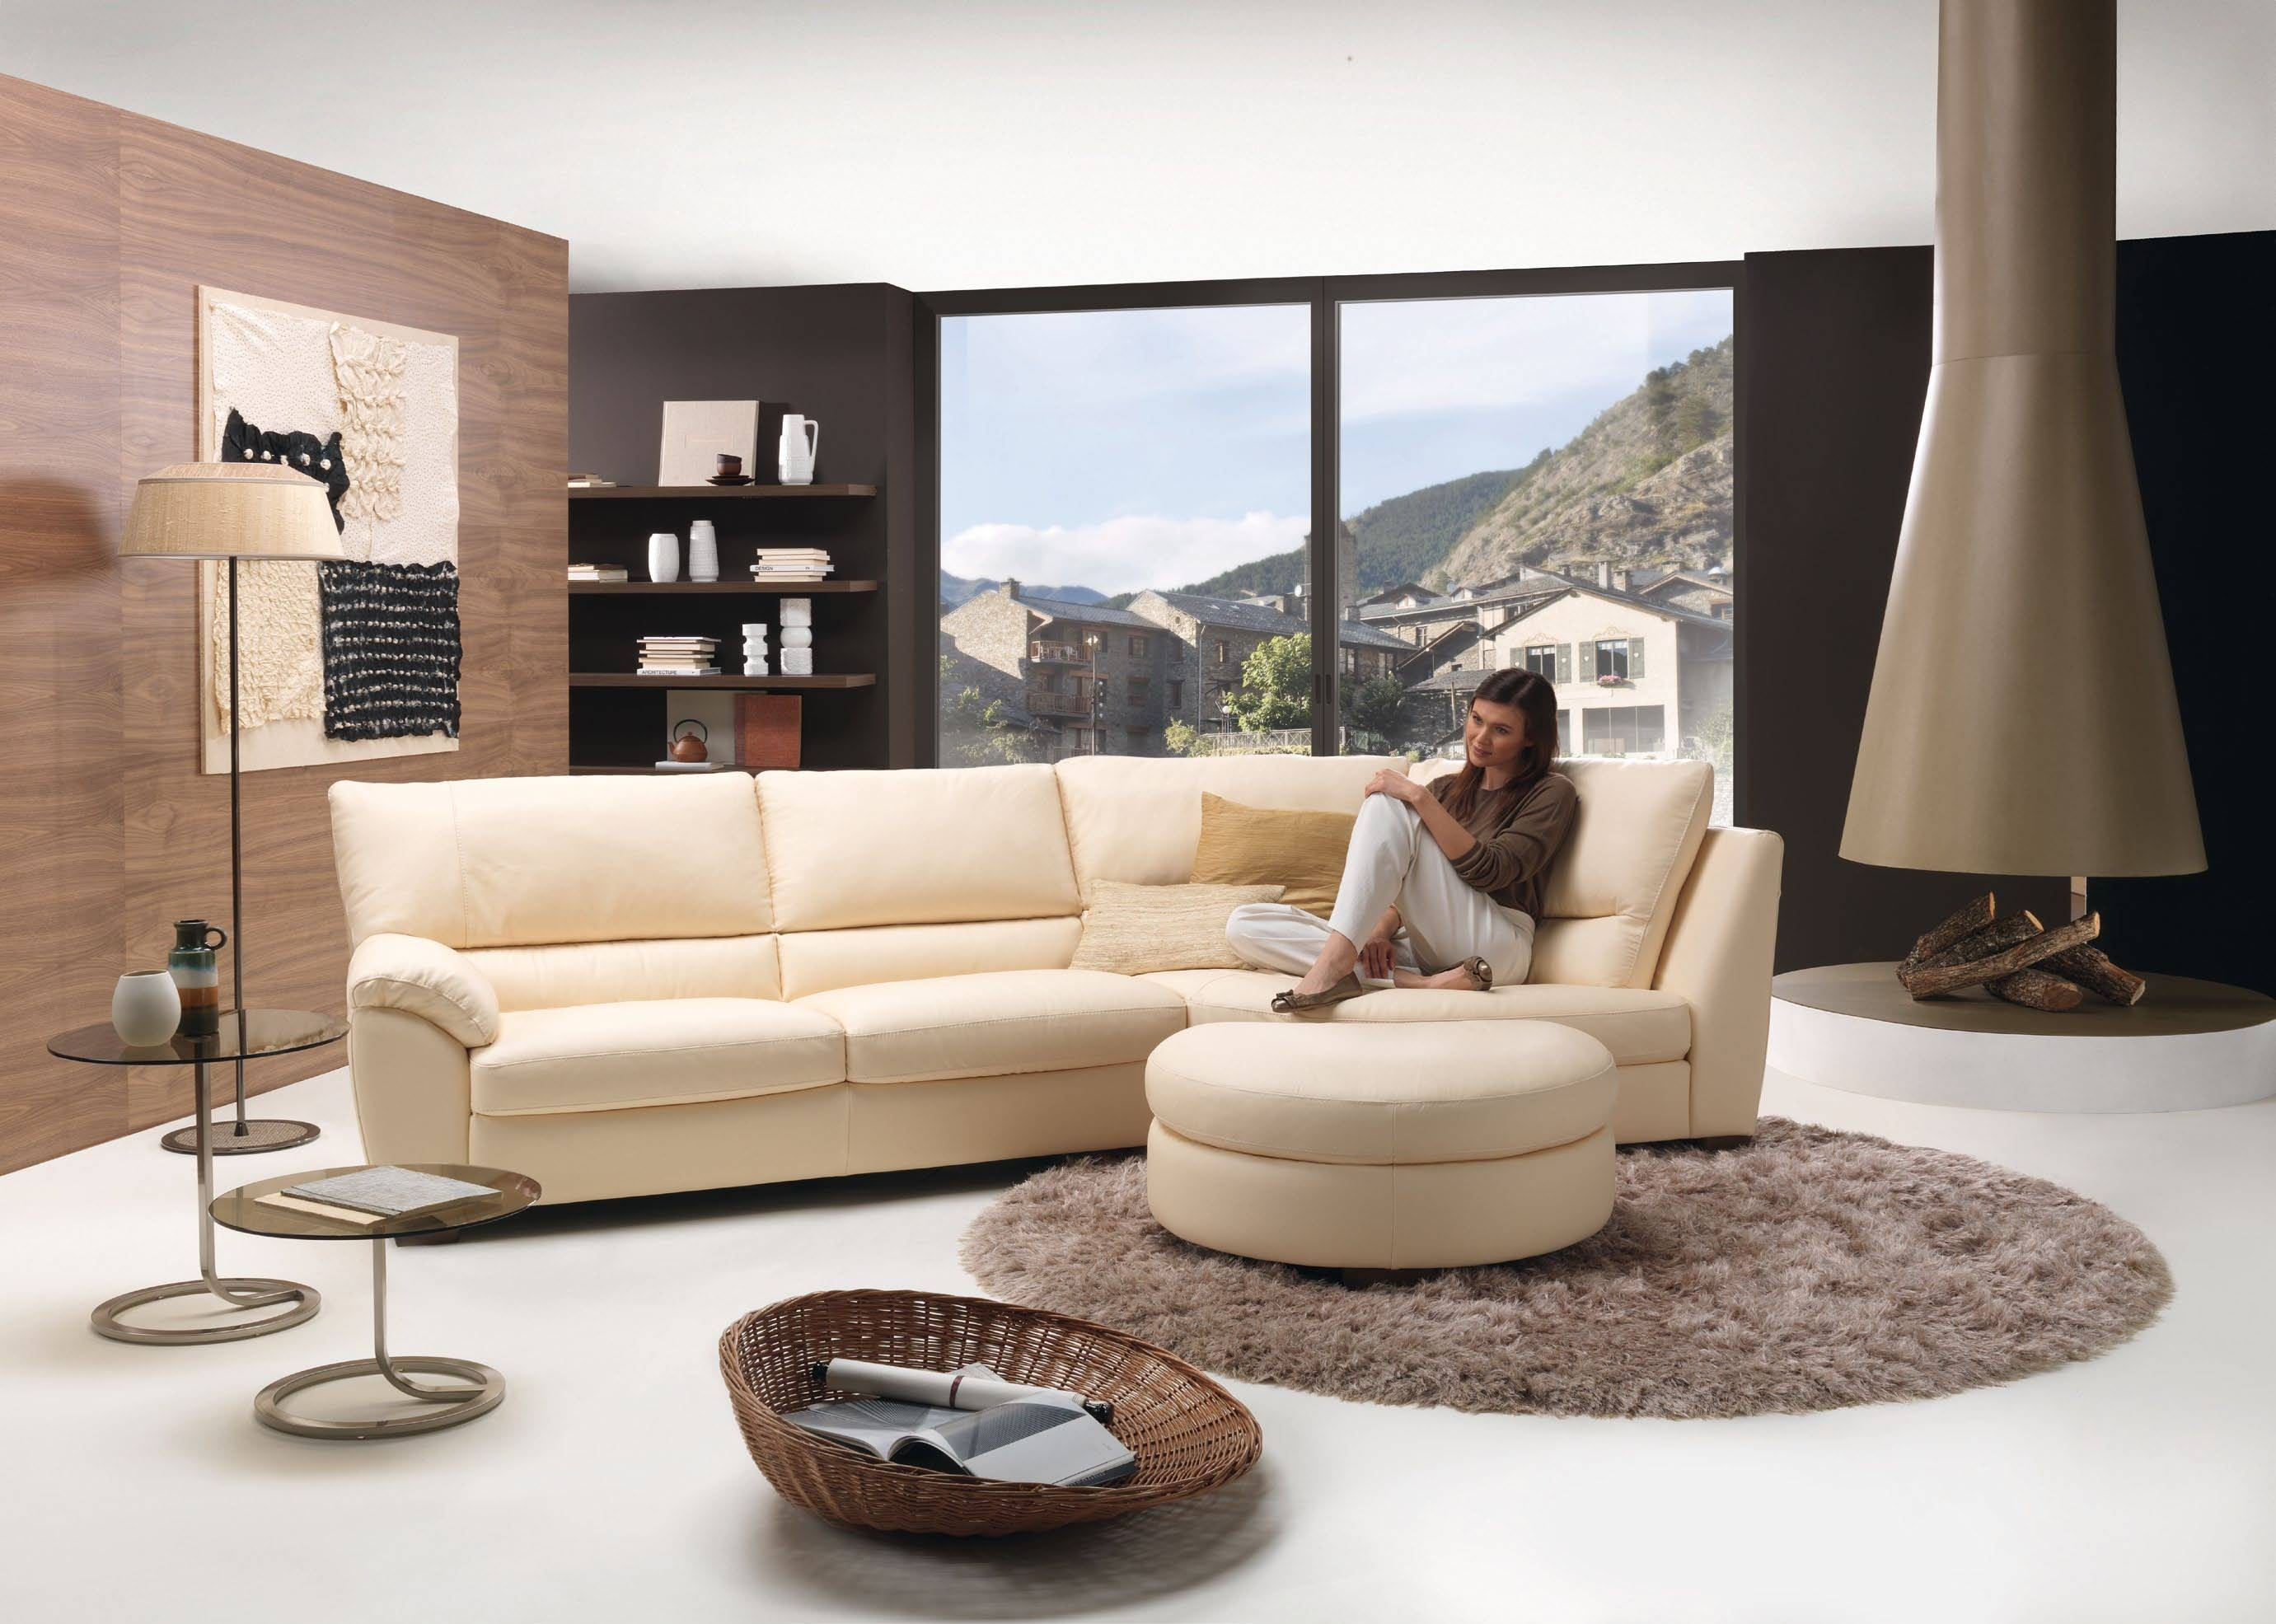 Sofas Center : Cream Colored Leather Sofa Alluring Jpg Home throughout Cream Colored Sofas (Image 23 of 30)